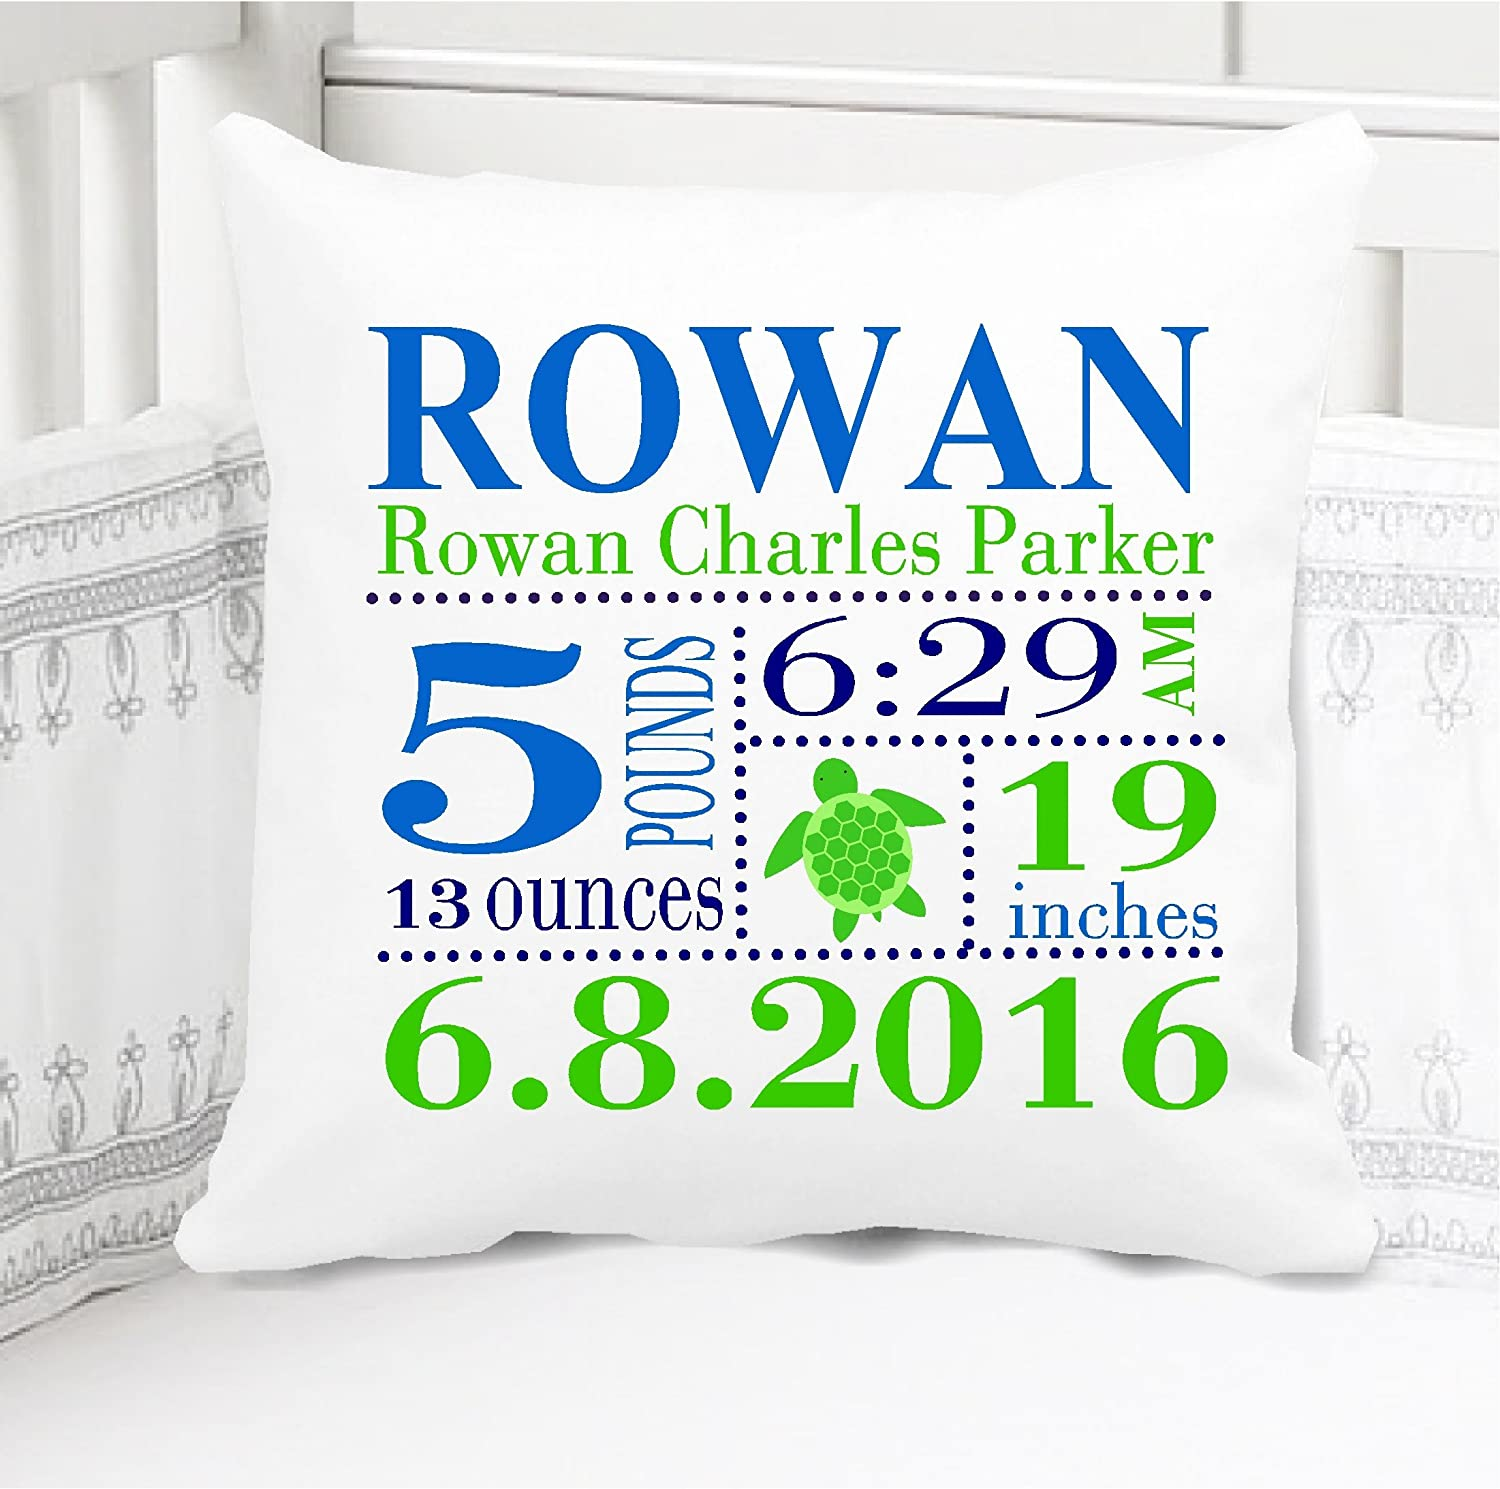 Birth Announcement Pillow for Baby Boys Sea Turtle Nursery - Includes Personalized Pillowcase and Pillow Insert 14